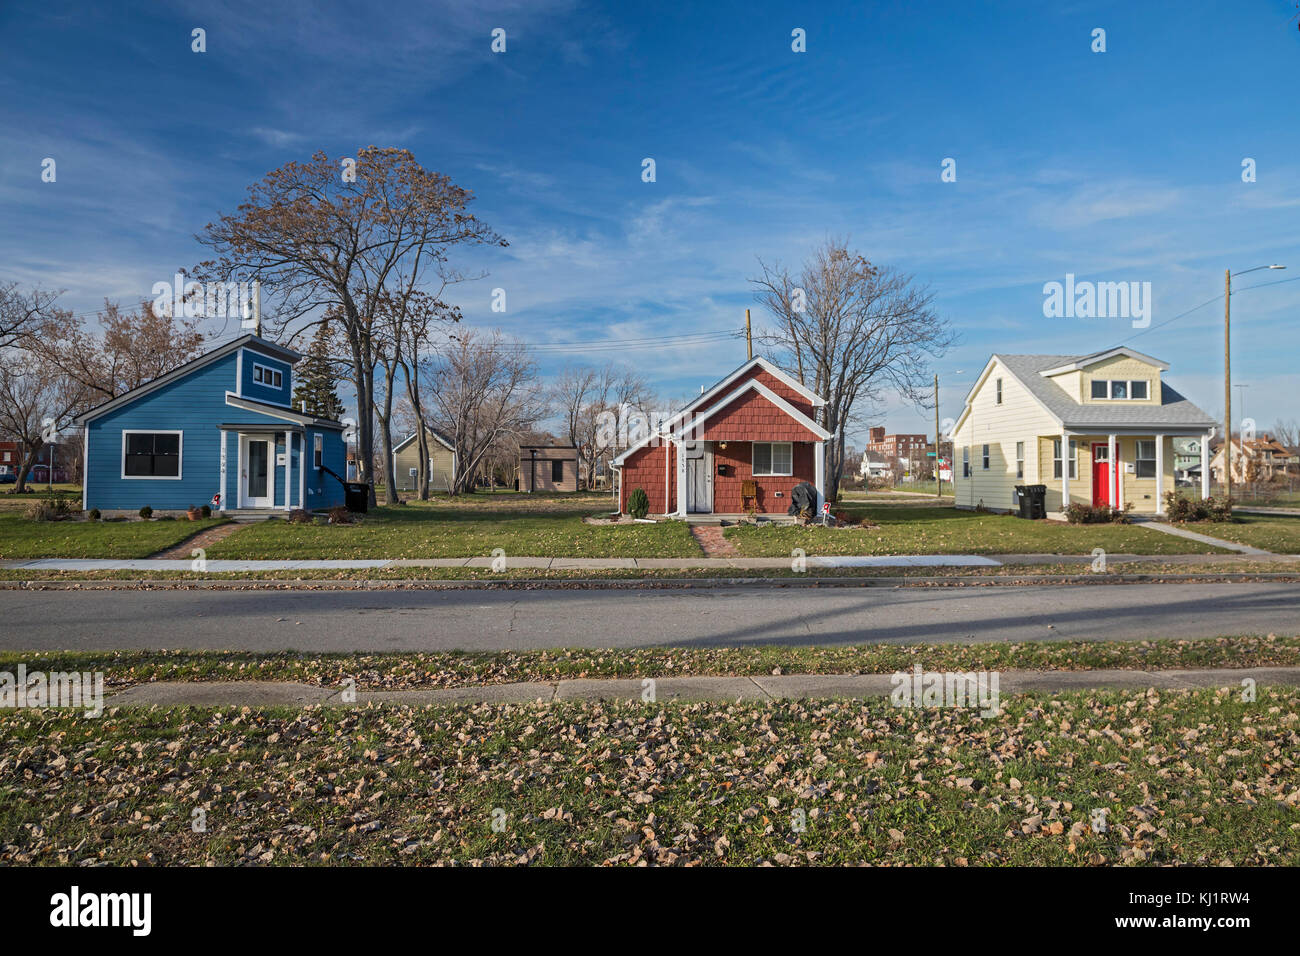 Tiny houses stock photos tiny houses stock images alamy for Tiny house holland michigan